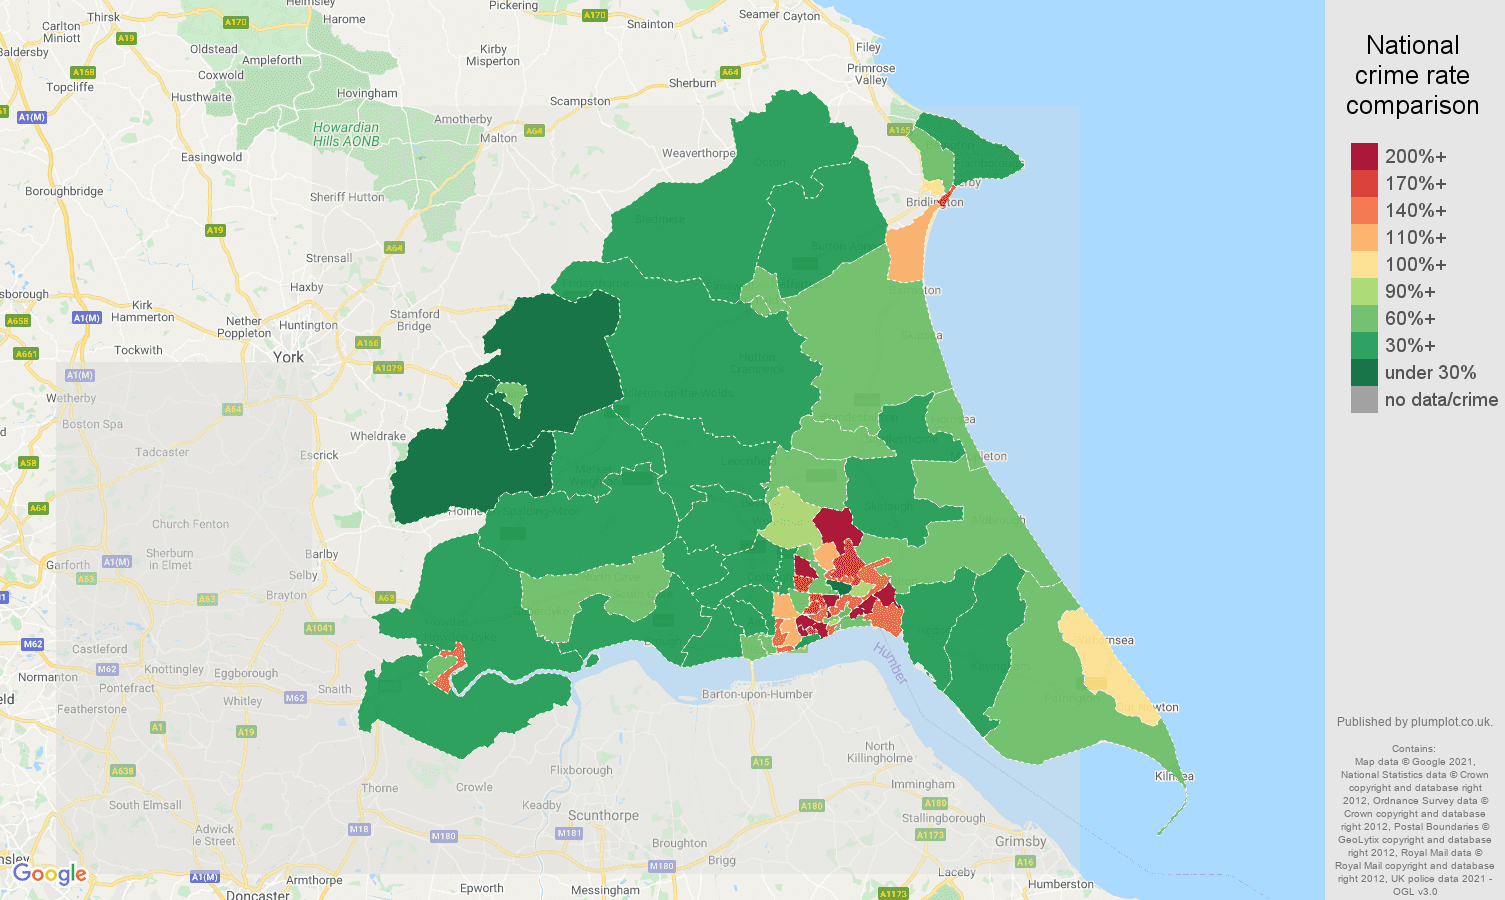 East Riding of Yorkshire violent crime rate comparison map